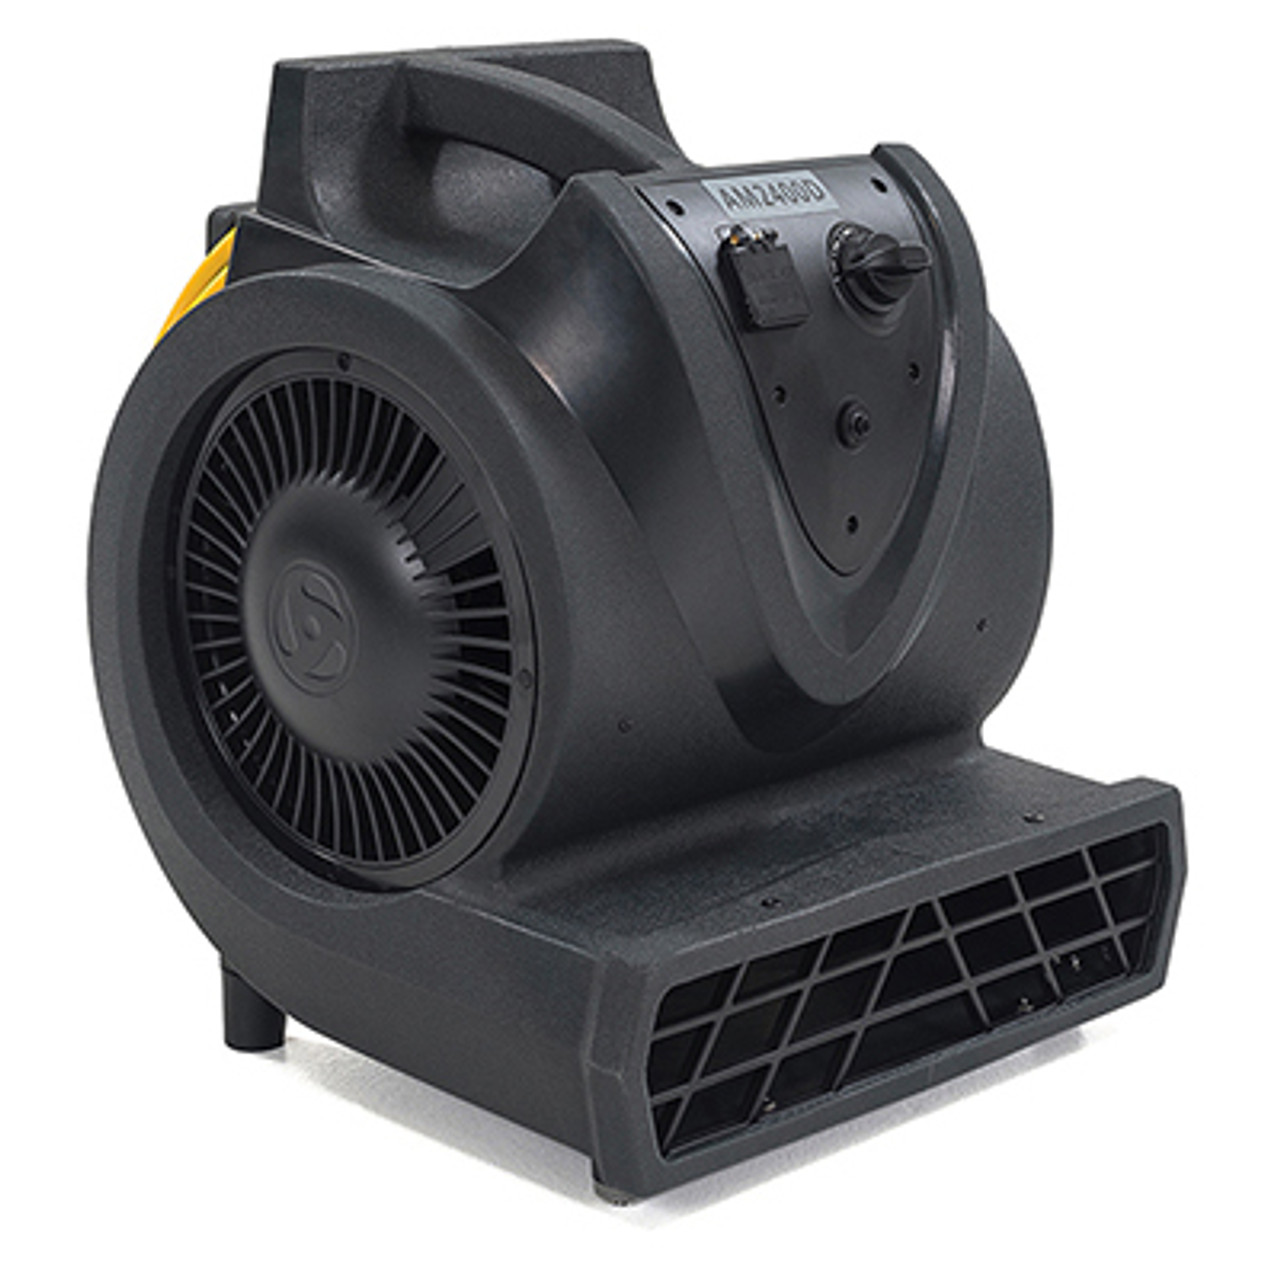 Viper AM2400D floor carpet dryer blower fan 0 33 hp 2400 cfm 3 speed GFCI  outlet V50000390